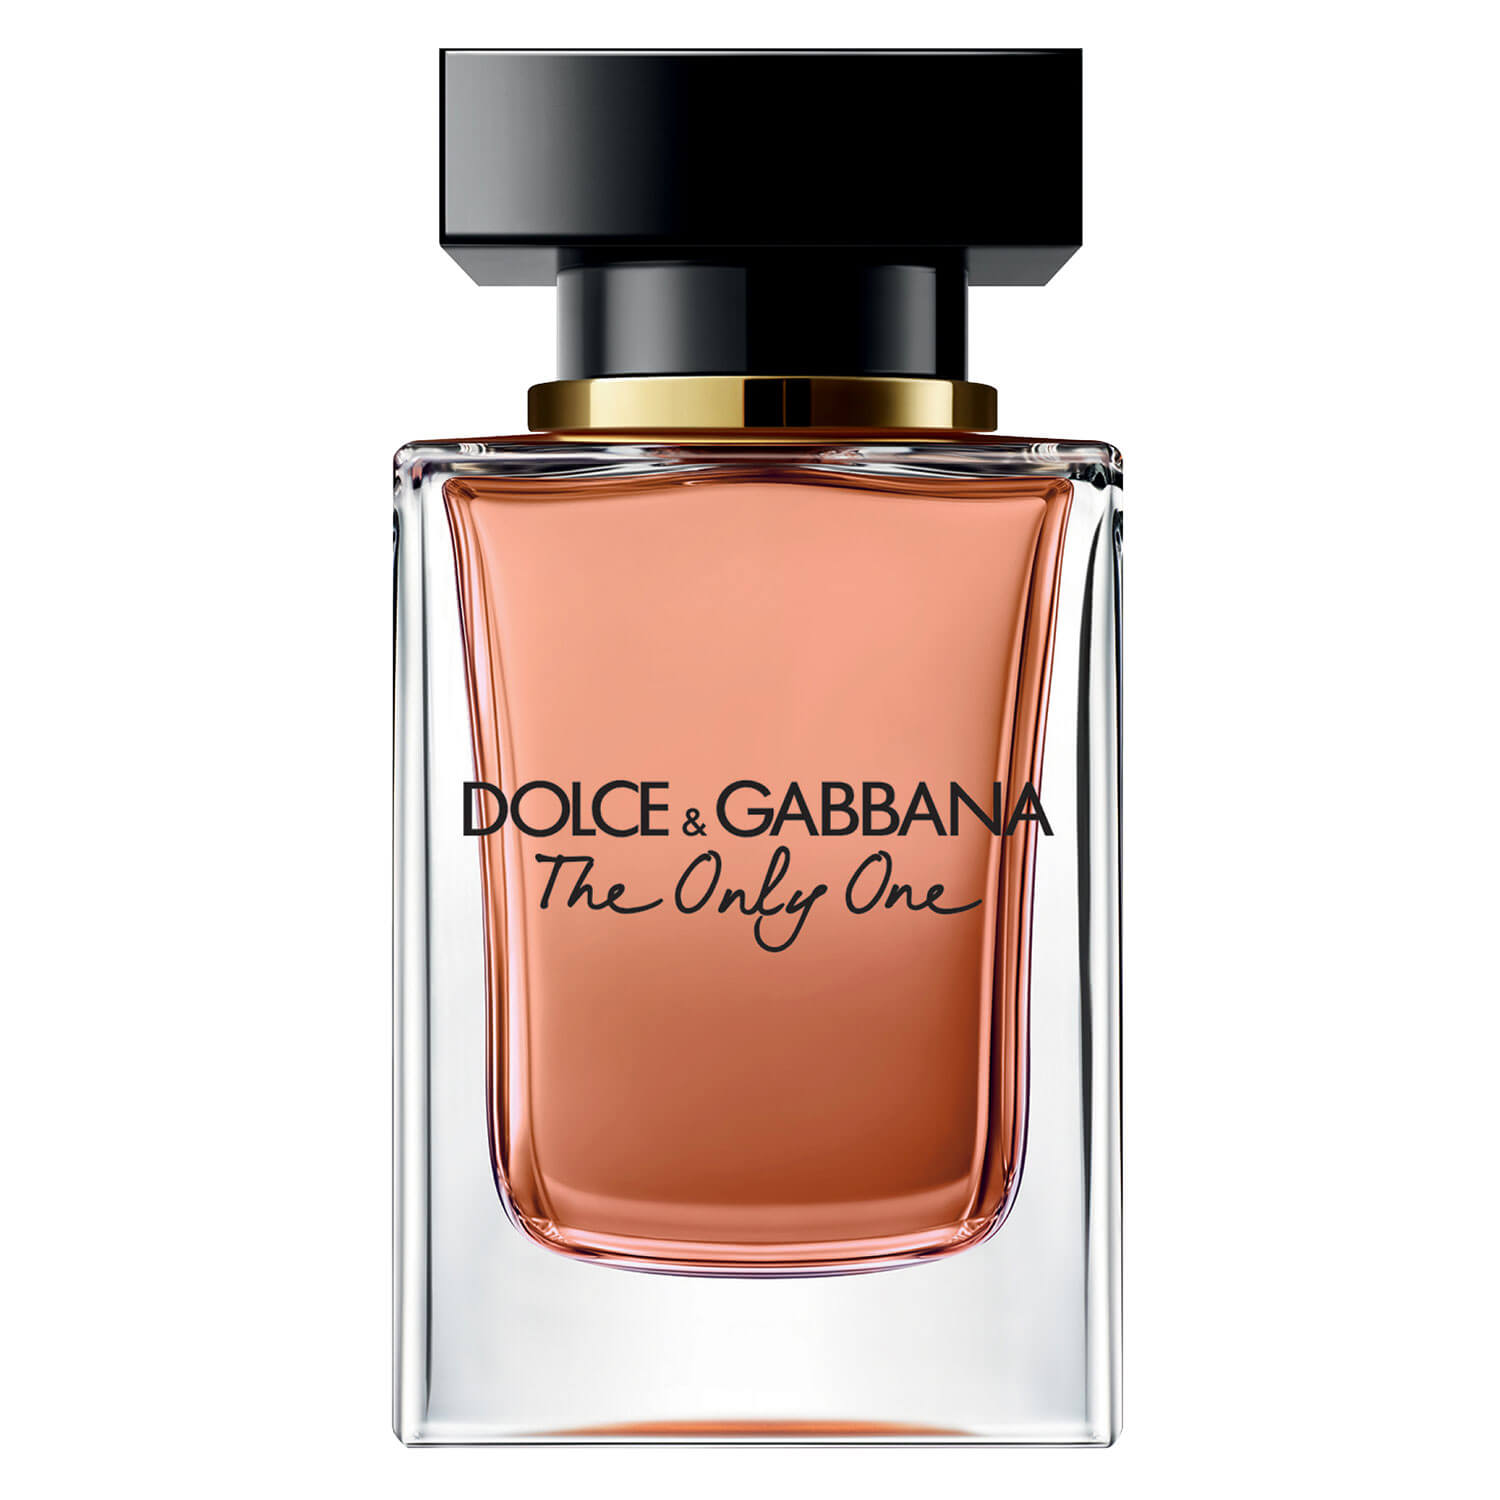 D&G The One - The Only One EDP